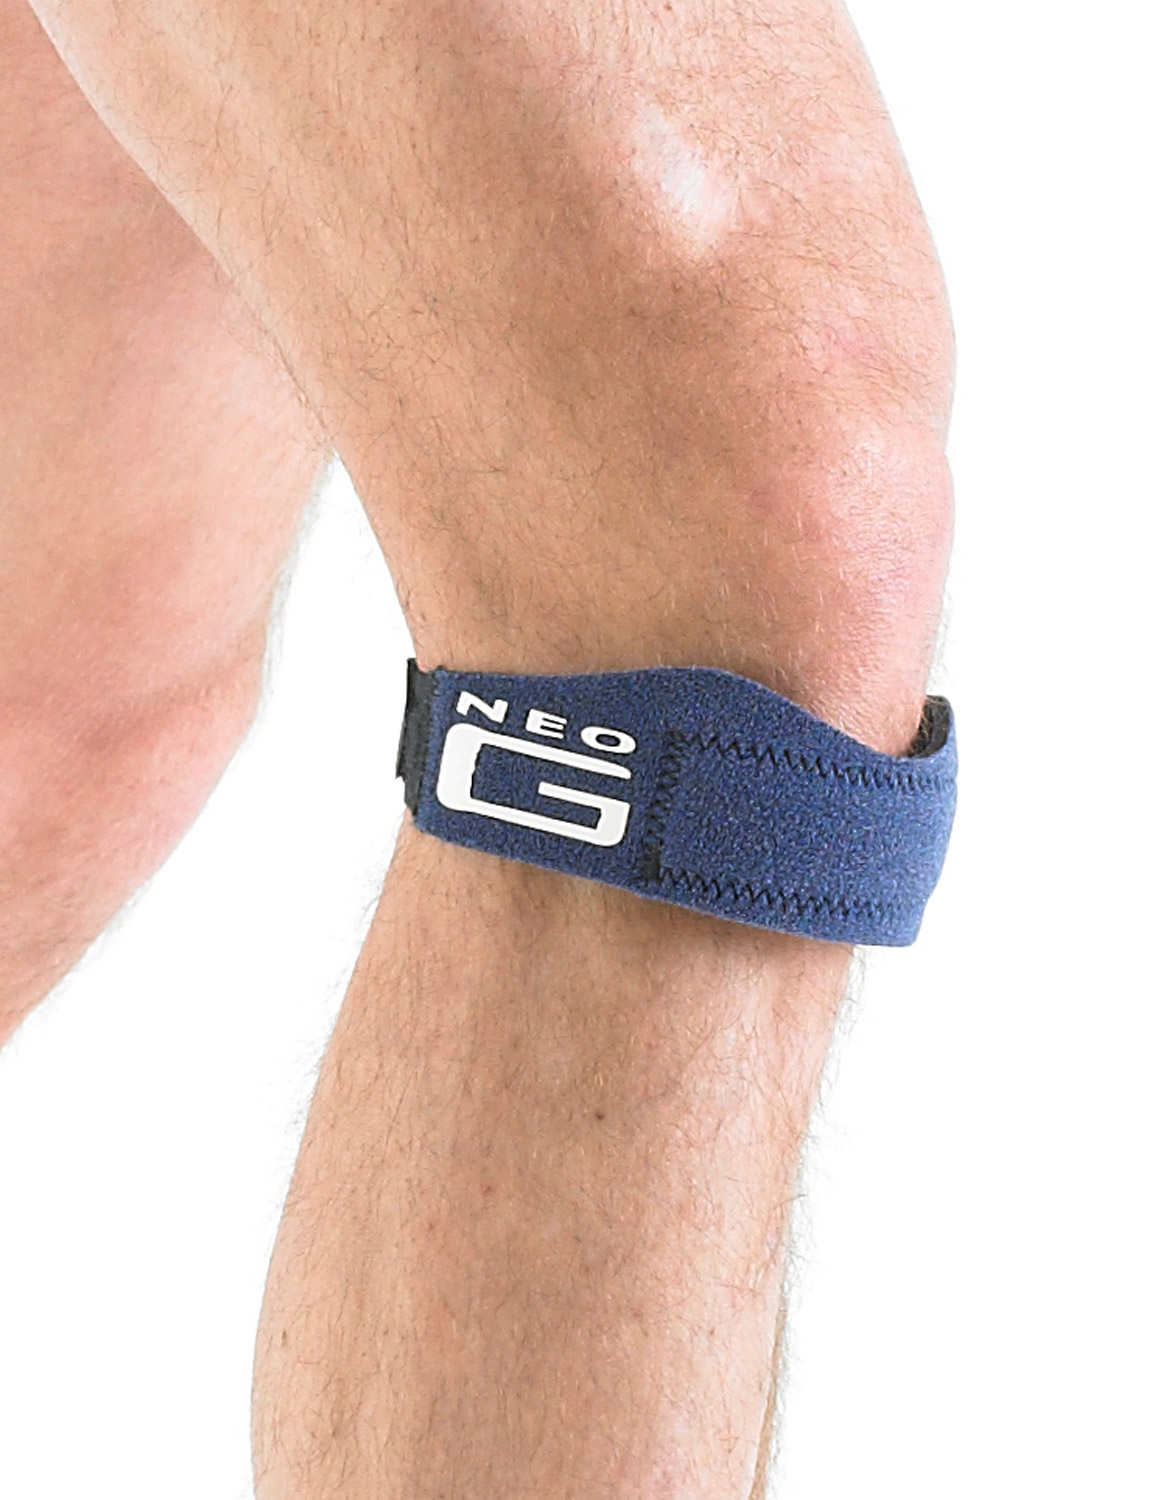 886 - PATELLA BAND  The support can be used to help with pain associated with any patella tendon irritation and inflammation caused by occupational or sports activities.